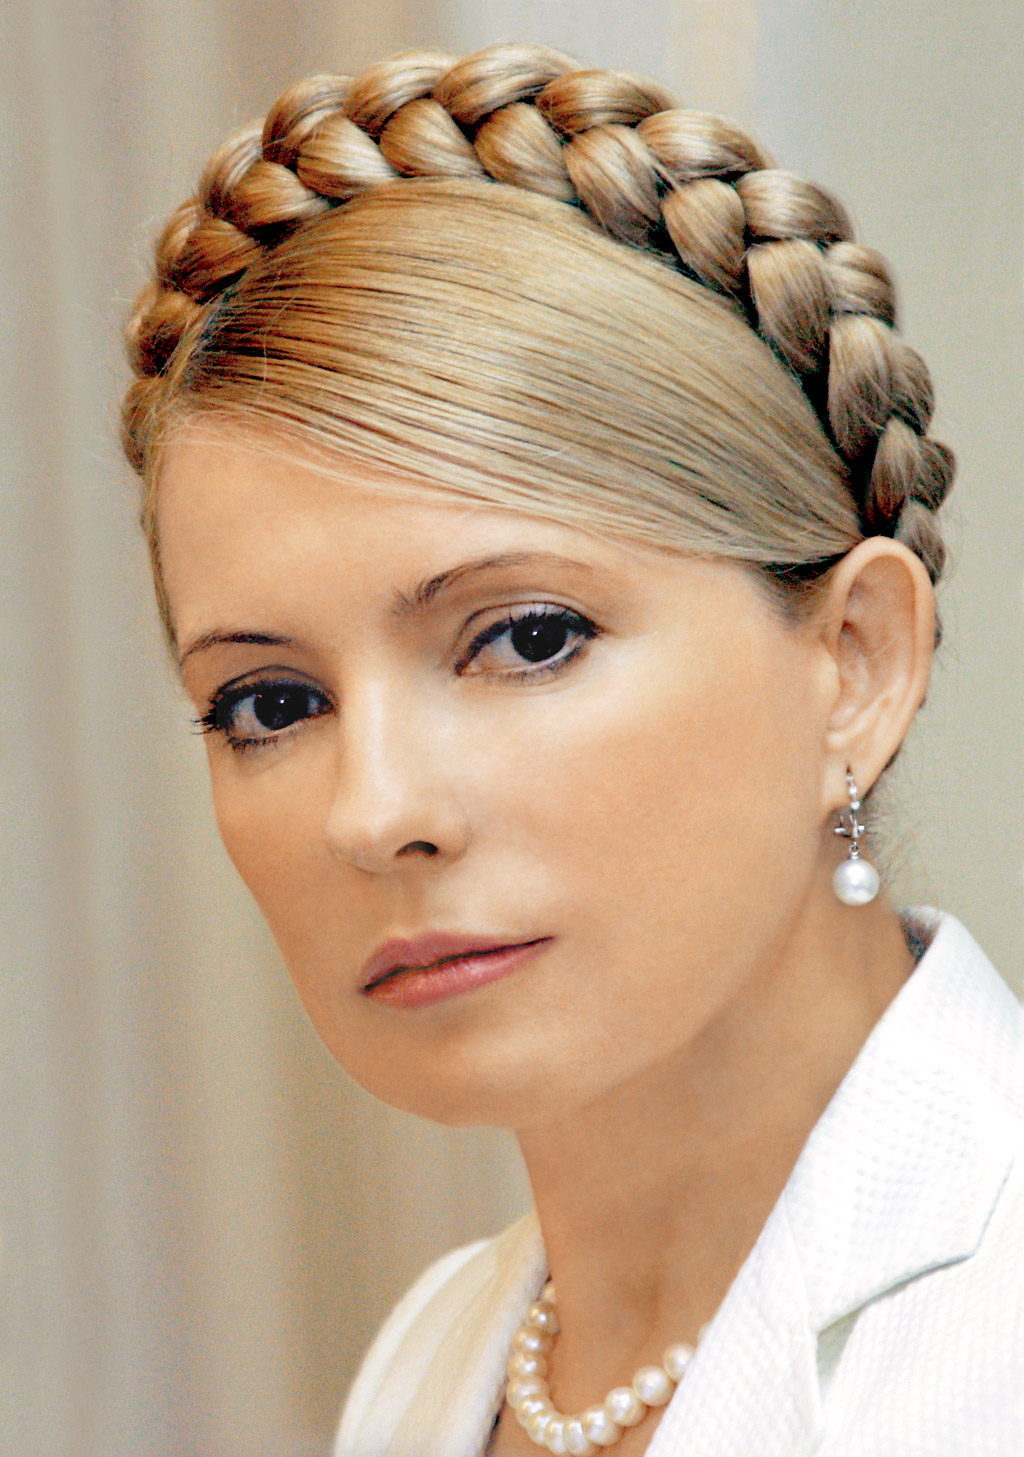 Yulia Tymoshenko The Graceful Beauty With Intelligence